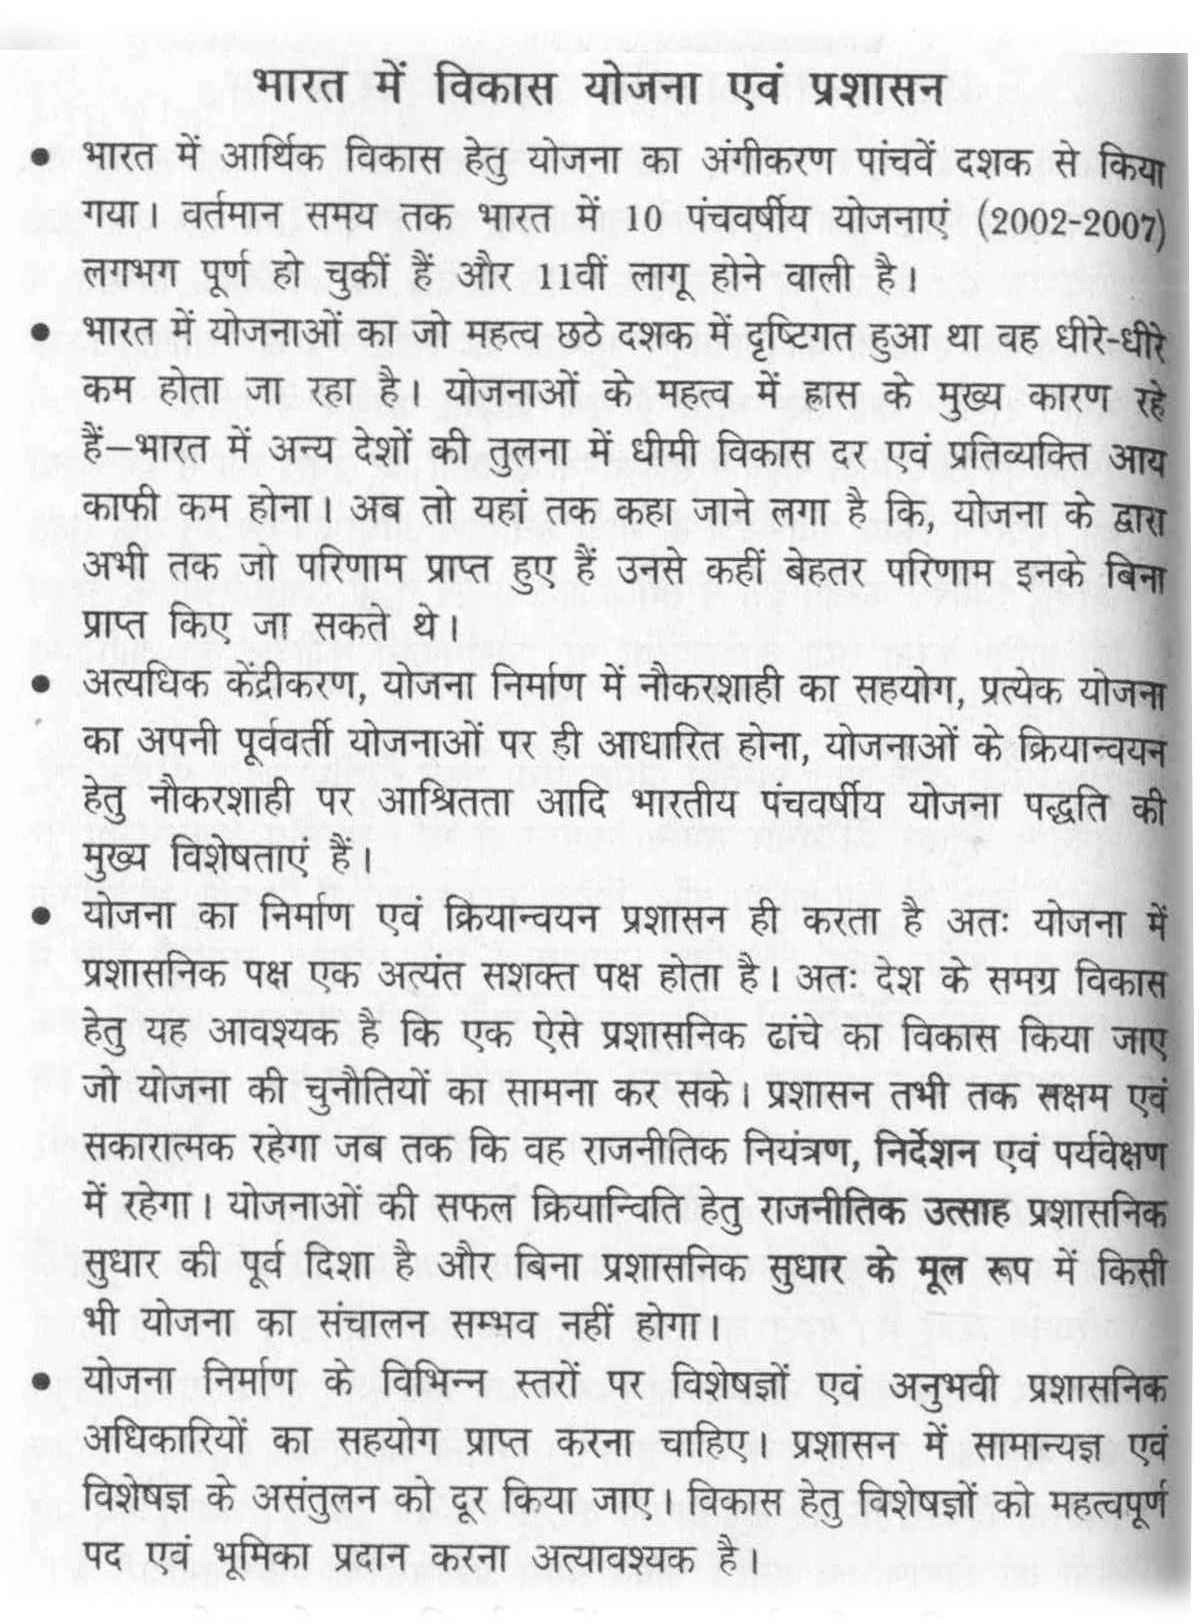 009 My Country Essay In Hindi Example Best Ideas Of Good Manner Easy Say No To Phenomenal 10 Lines Is Great Full